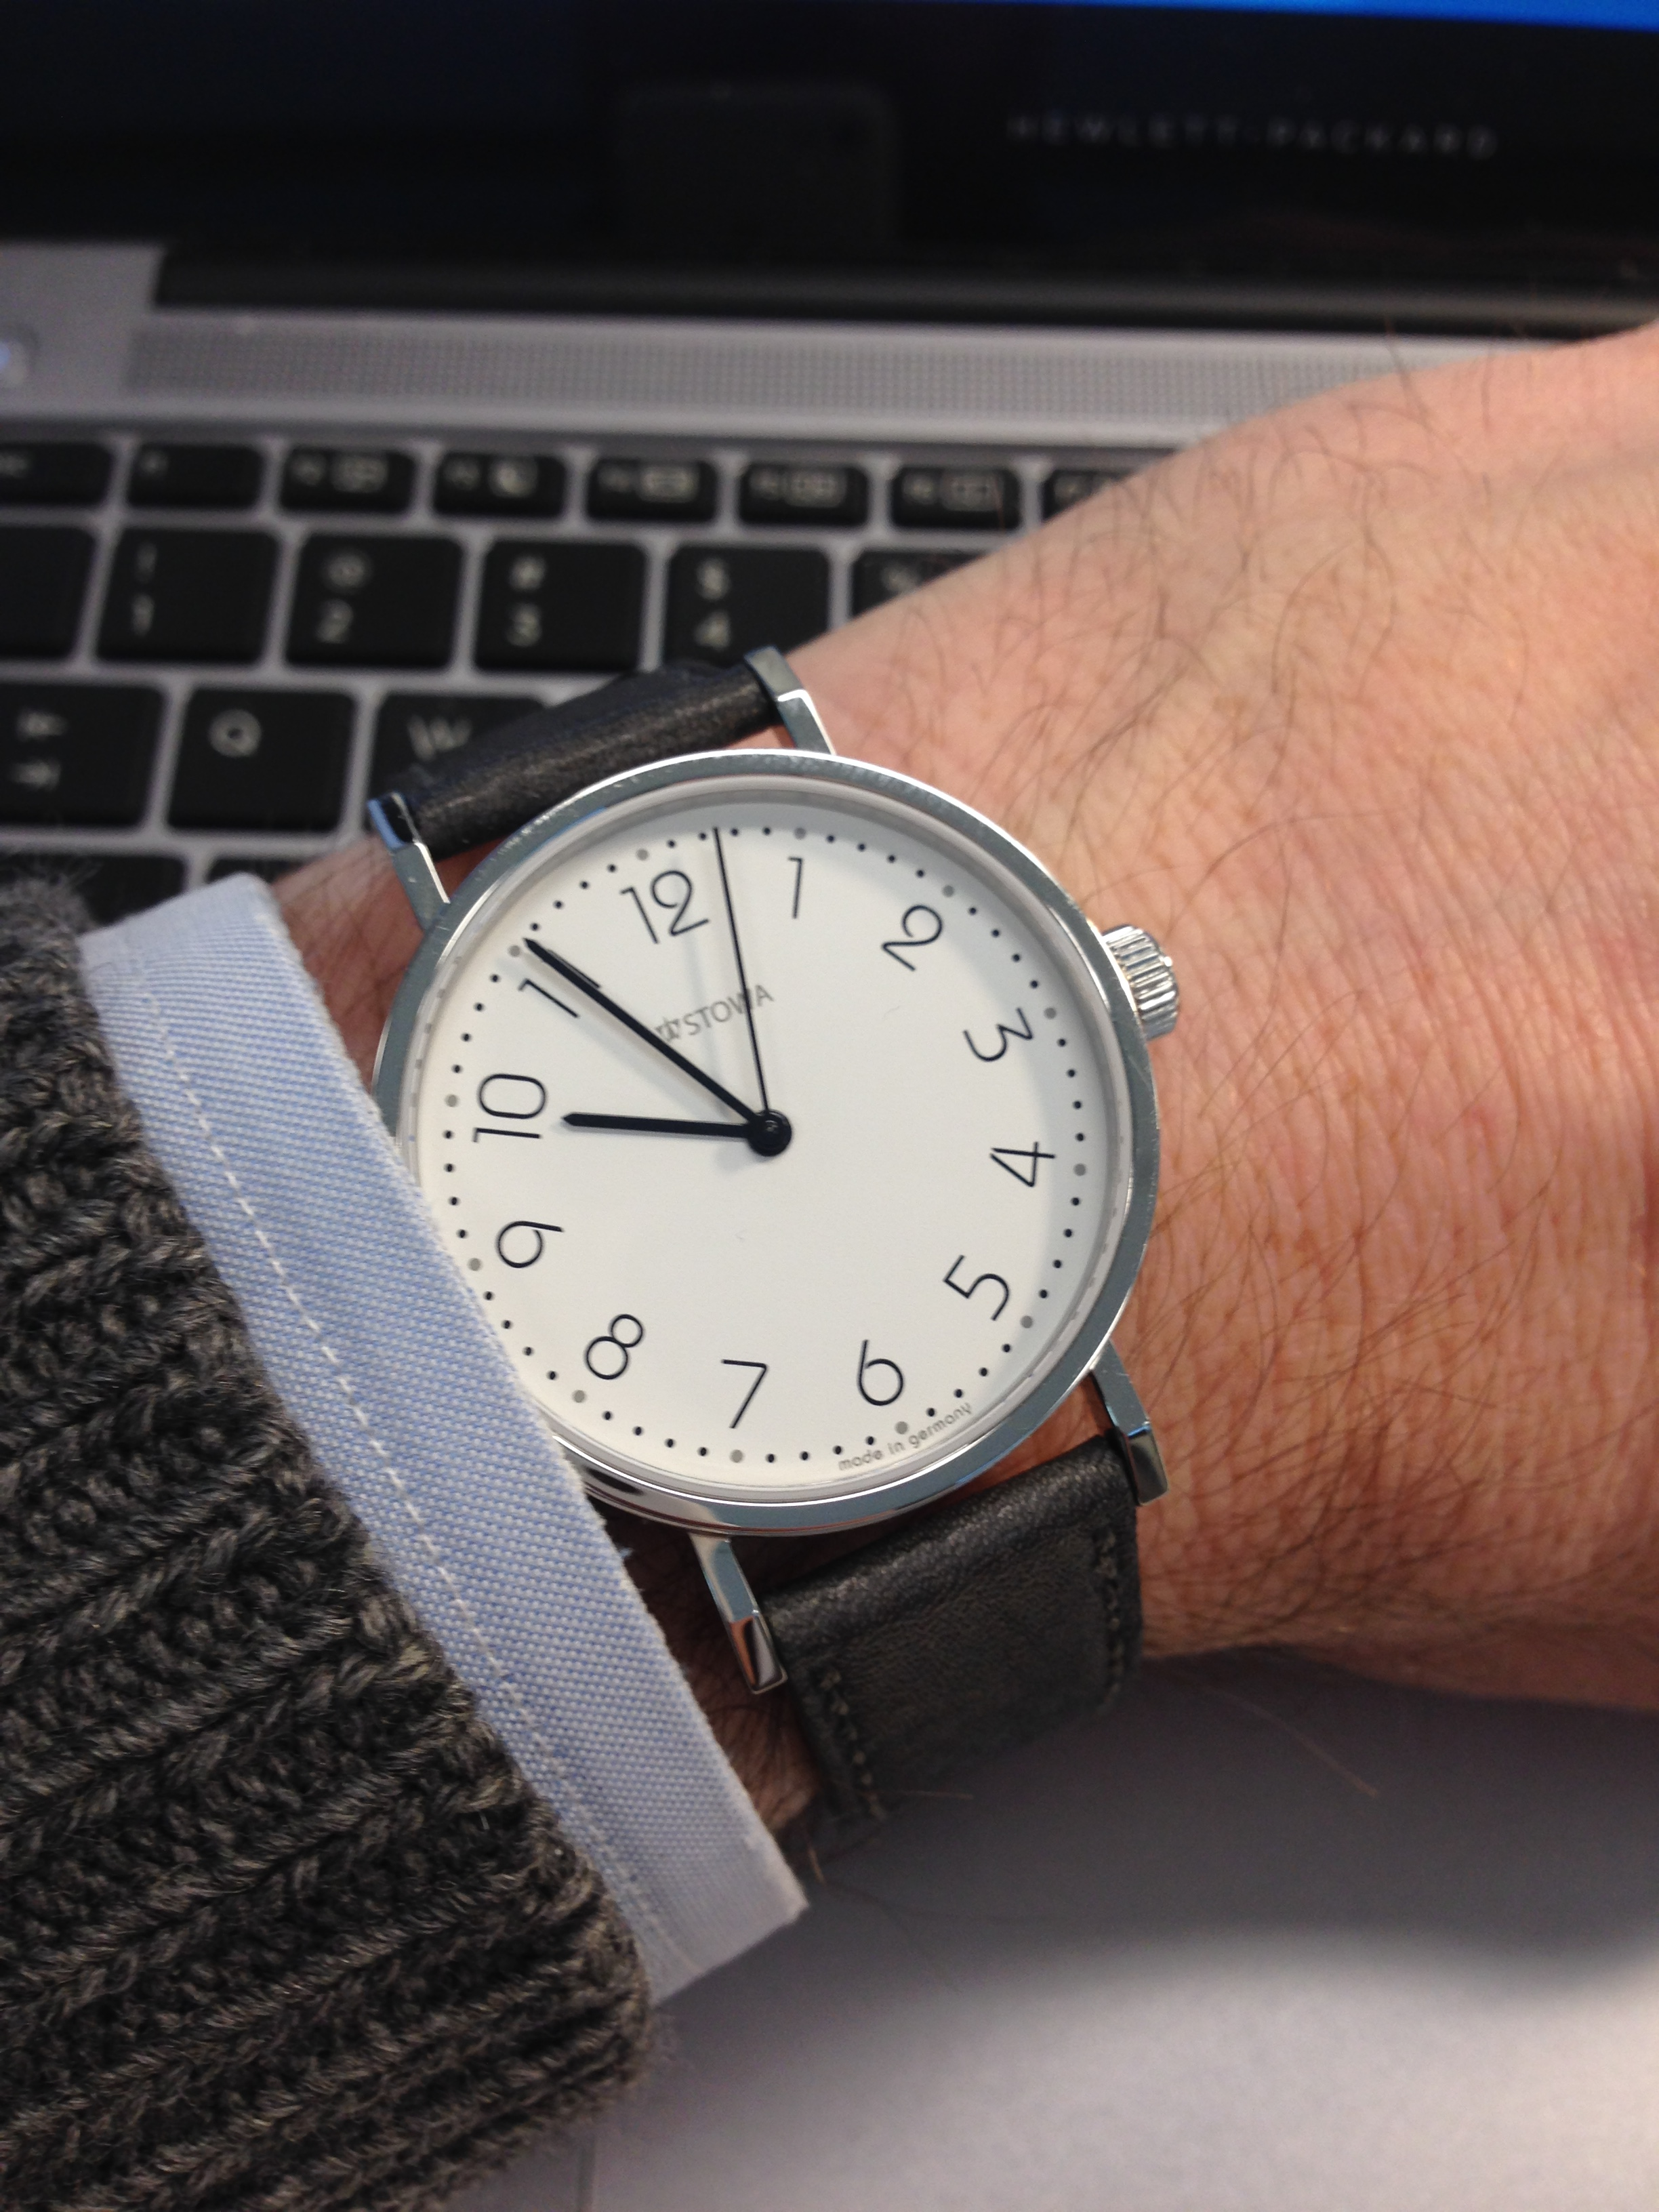 to wang max takes watch kent the wrist bauhaus watches minimalism